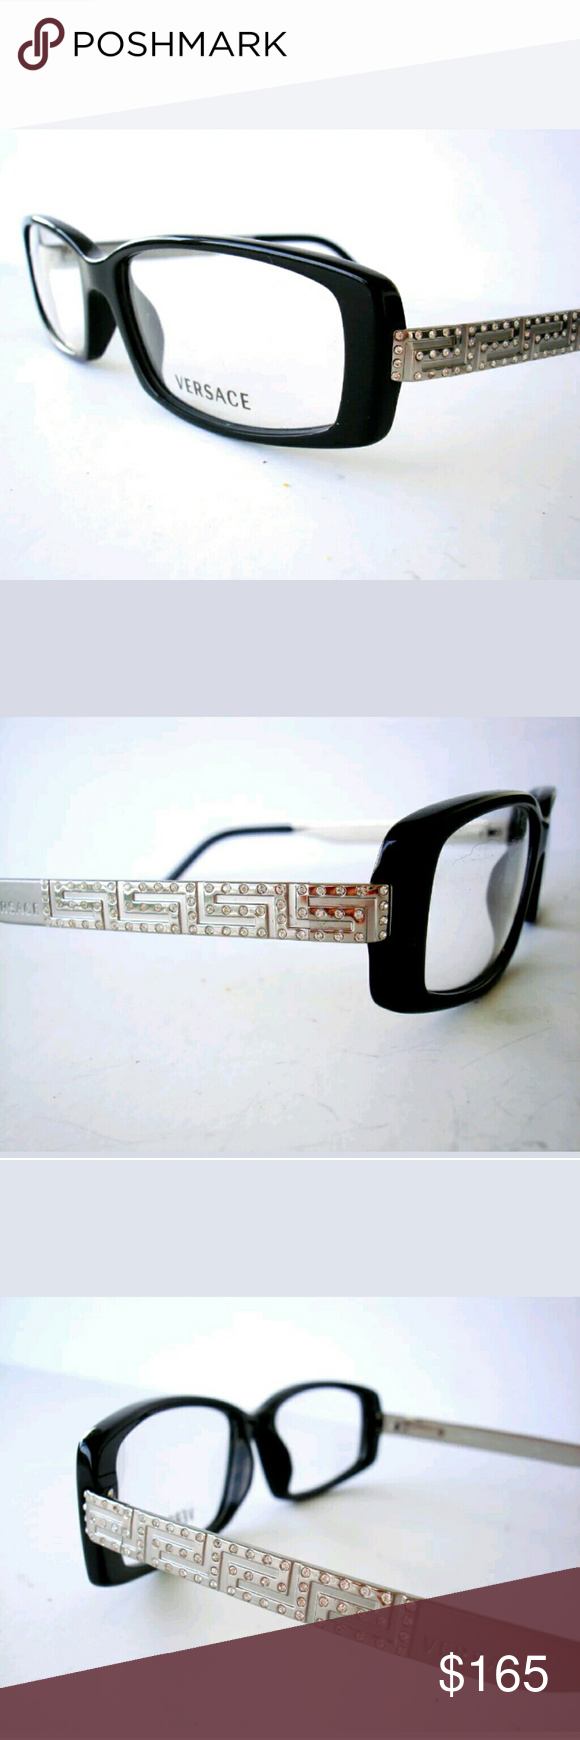 bae9aaacc74a Versace Eyeglasses Authentic Black and silver frame Crystal on sides  52-15-135 Case included Versace Accessories Glasses